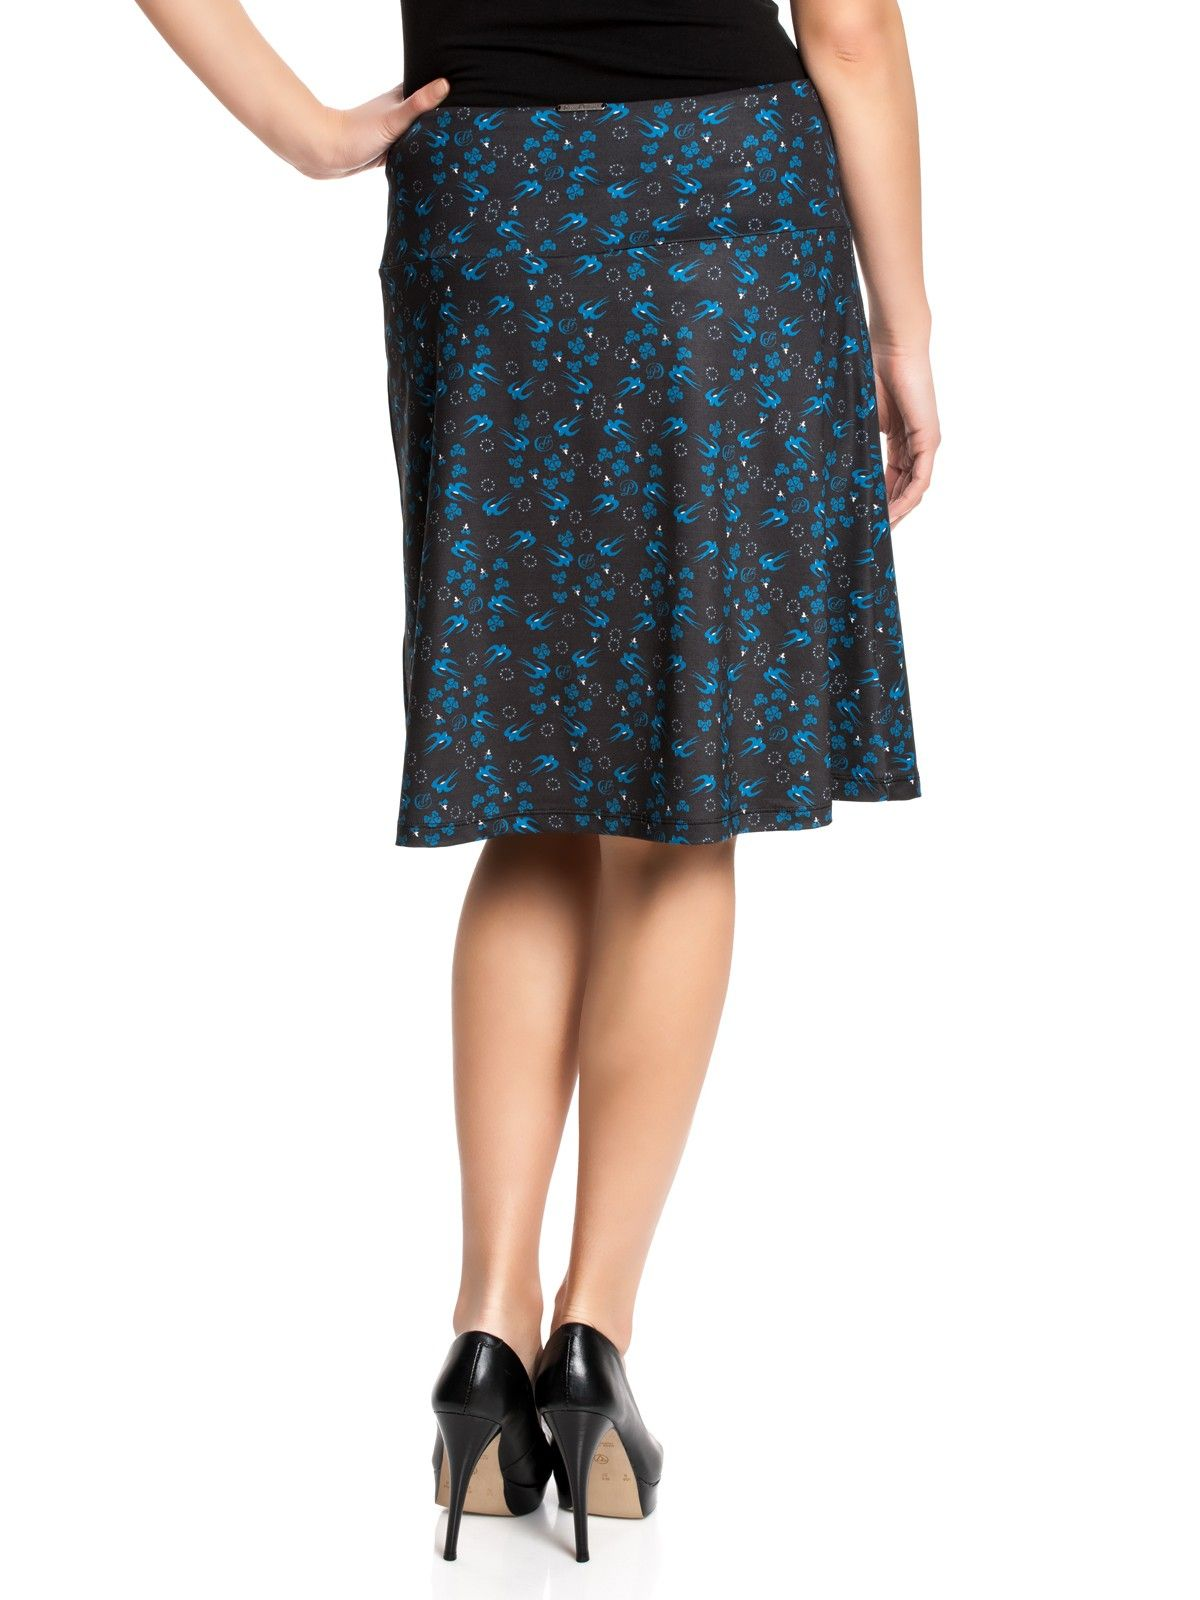 Swallow skirt pussy deluxe pinterest swallow and skirts